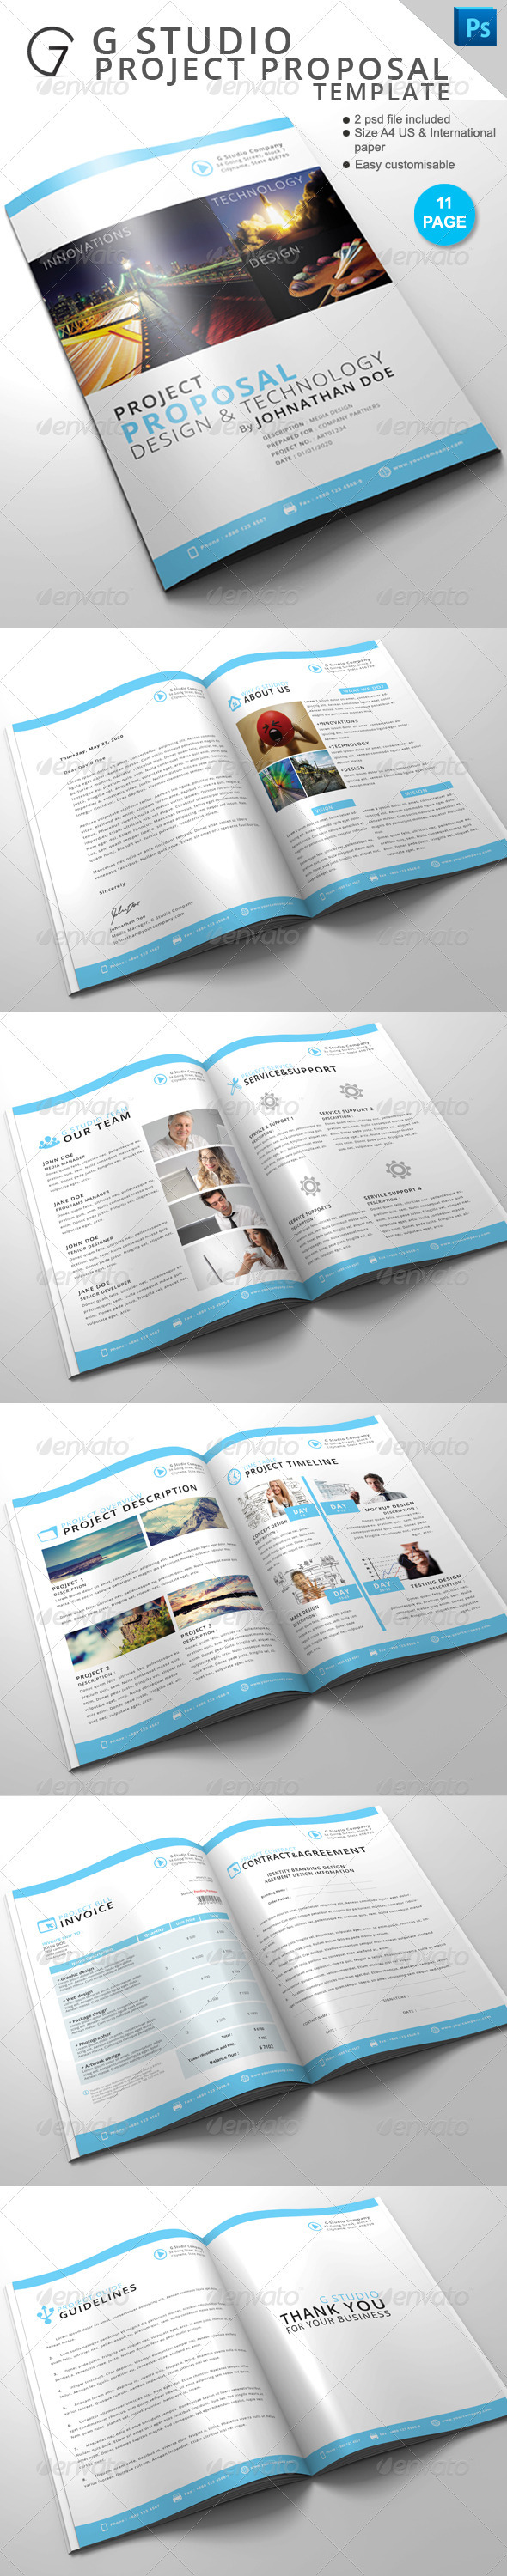 GraphicRiver Gstudio Project Proposal Template 3649580